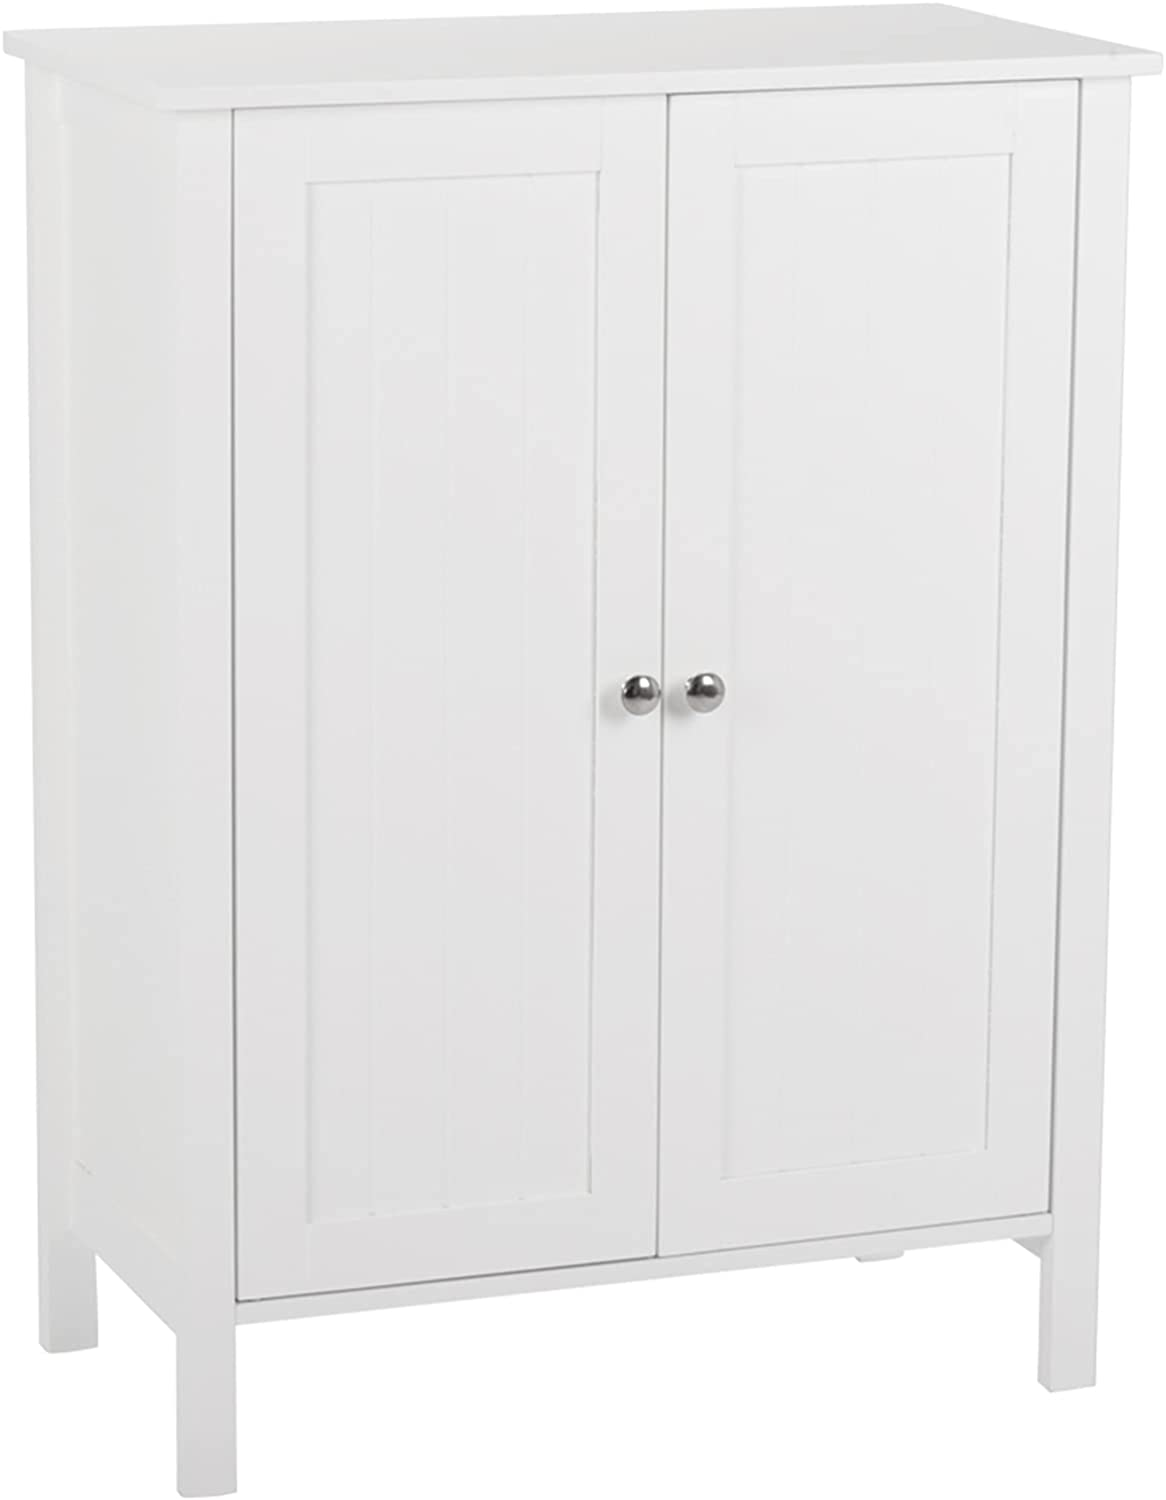 Savins Special Campaign gt1-zj FCH Double Doors 2021 spring and summer new Cabinet White Bathroom